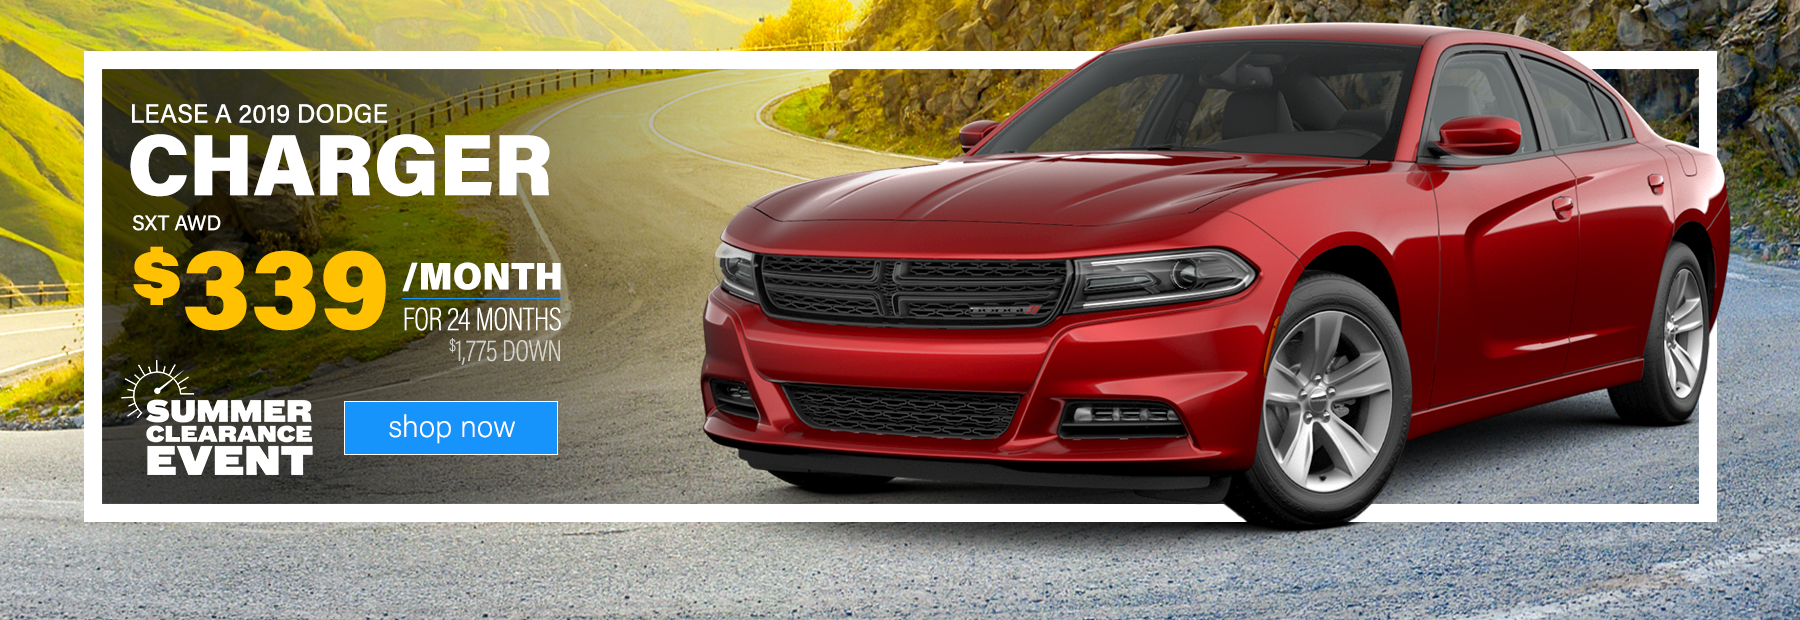 2019-dodge-charger-lease-specials-dayton-ohio